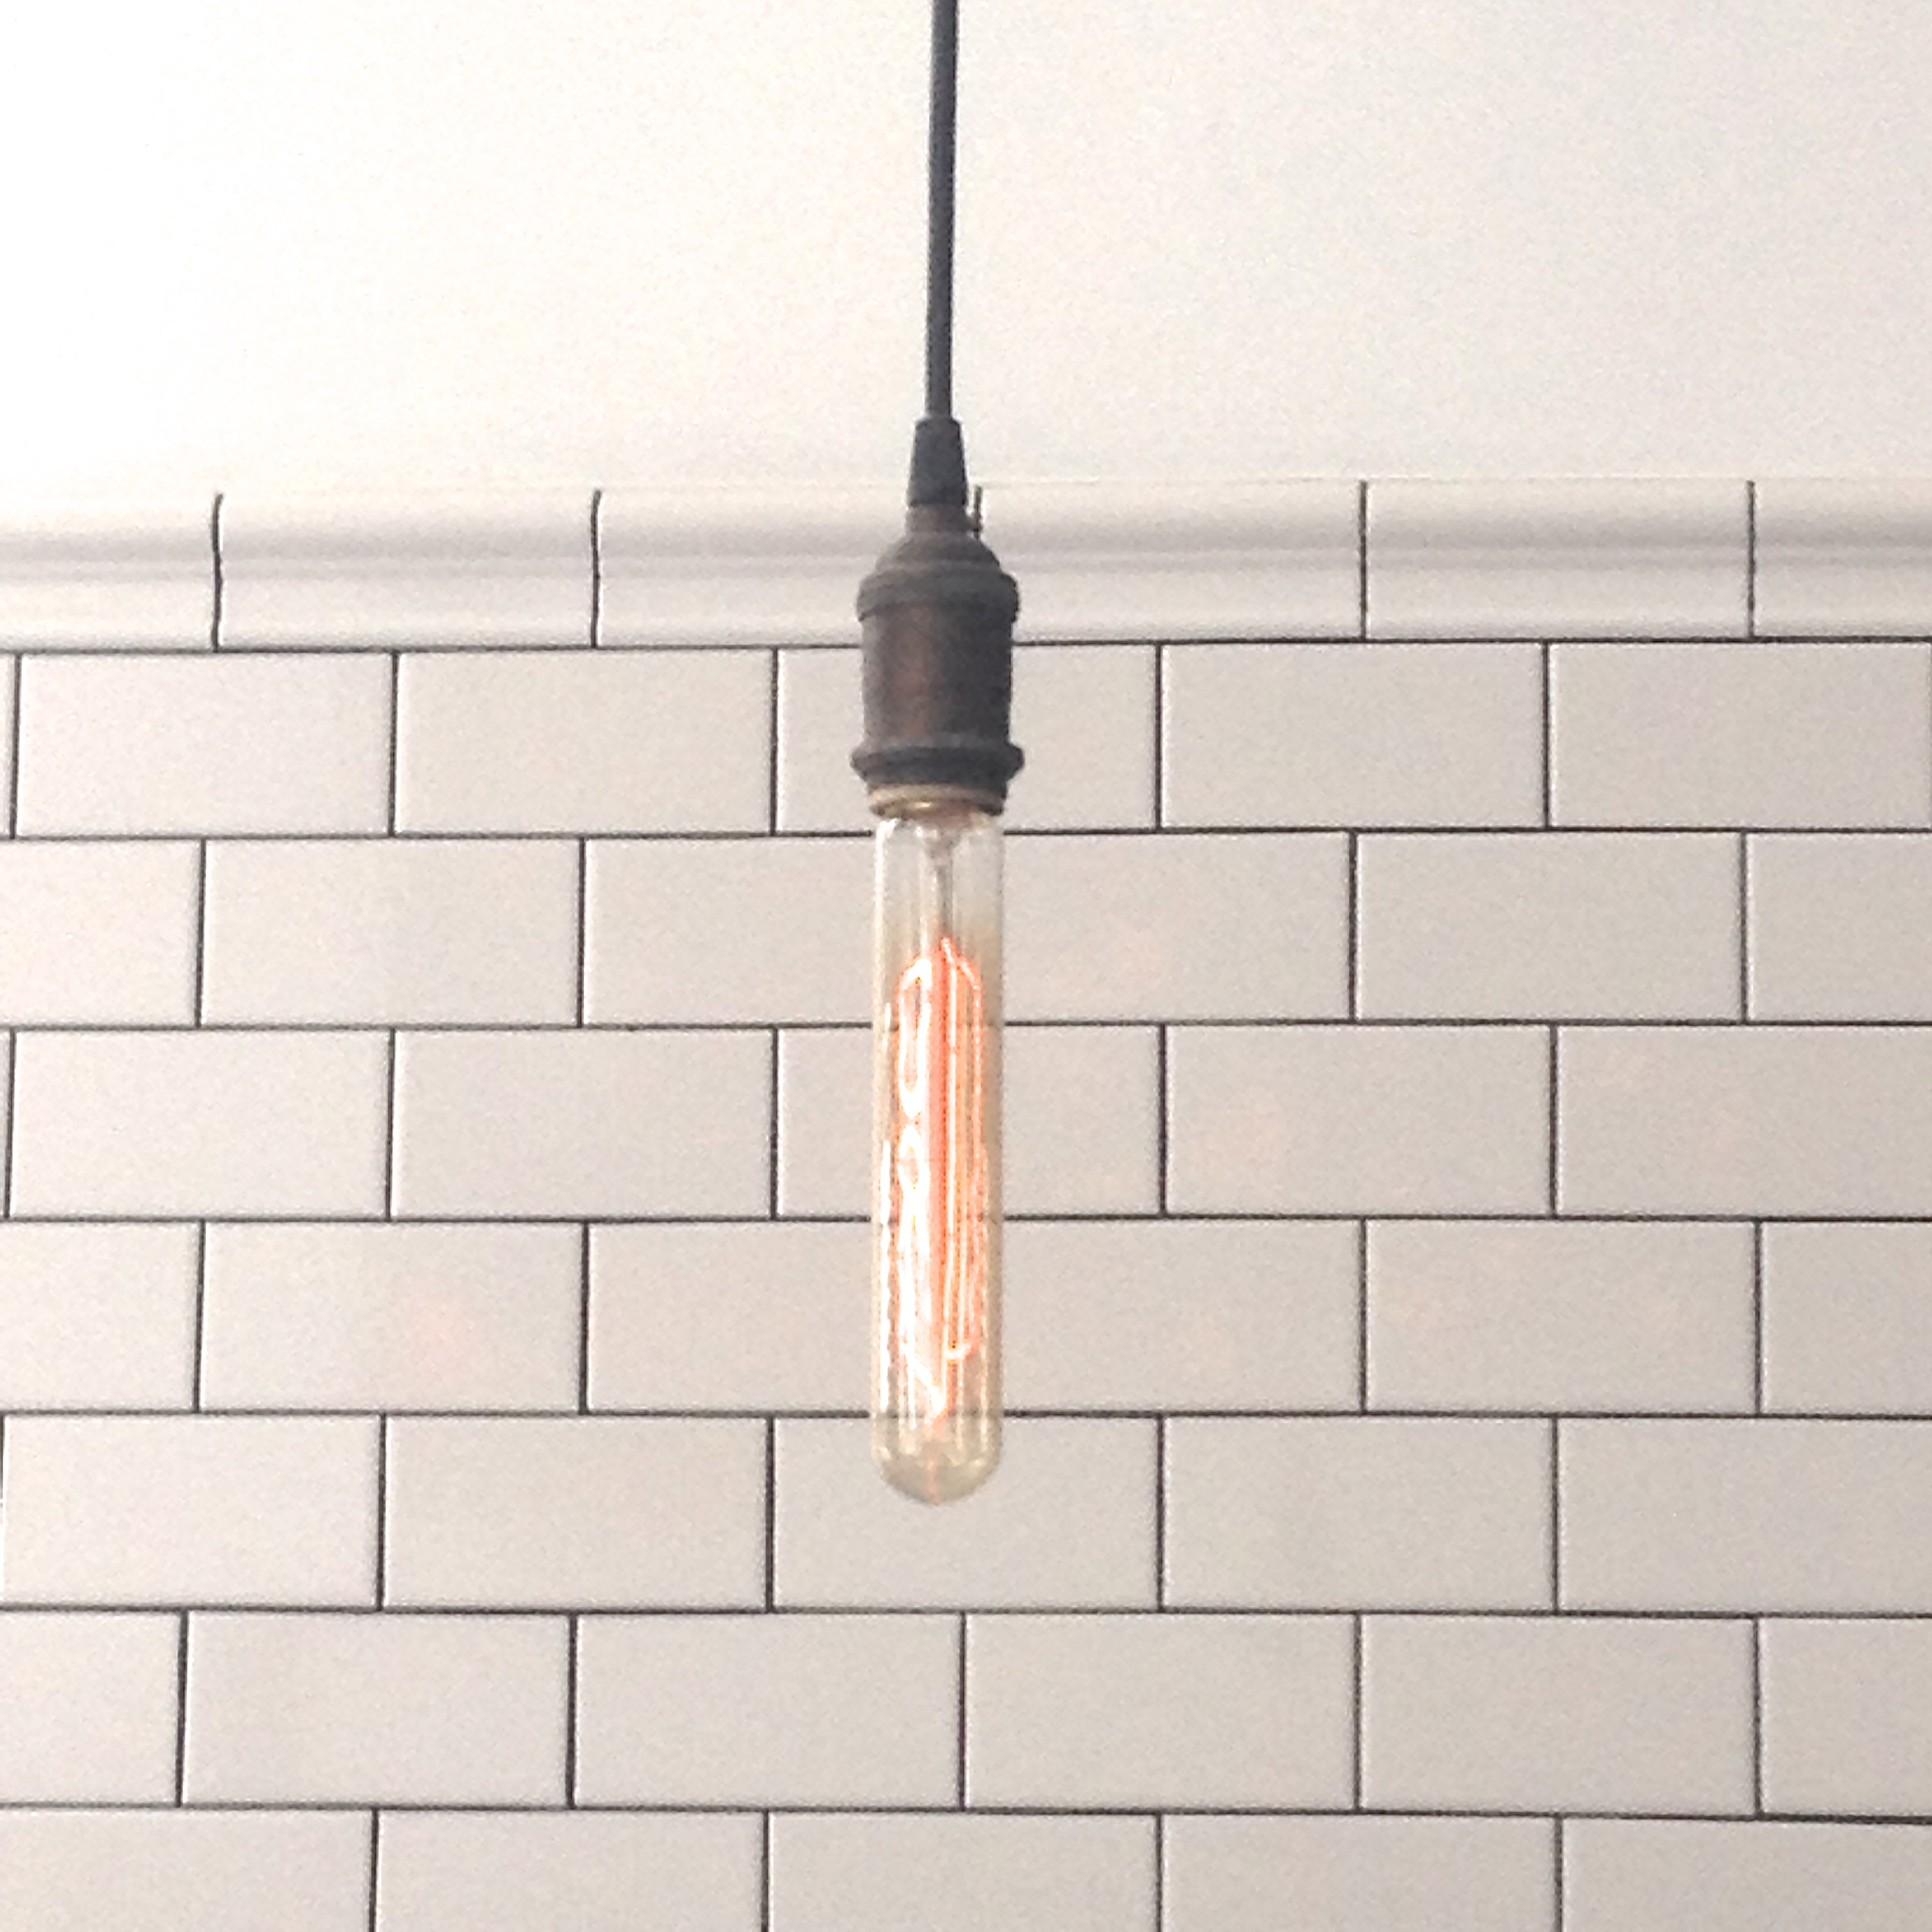 Two retro trends in one look does an edison bulb work with subway two retro trends in one look does an edison bulb work with subway tile dailygadgetfo Choice Image